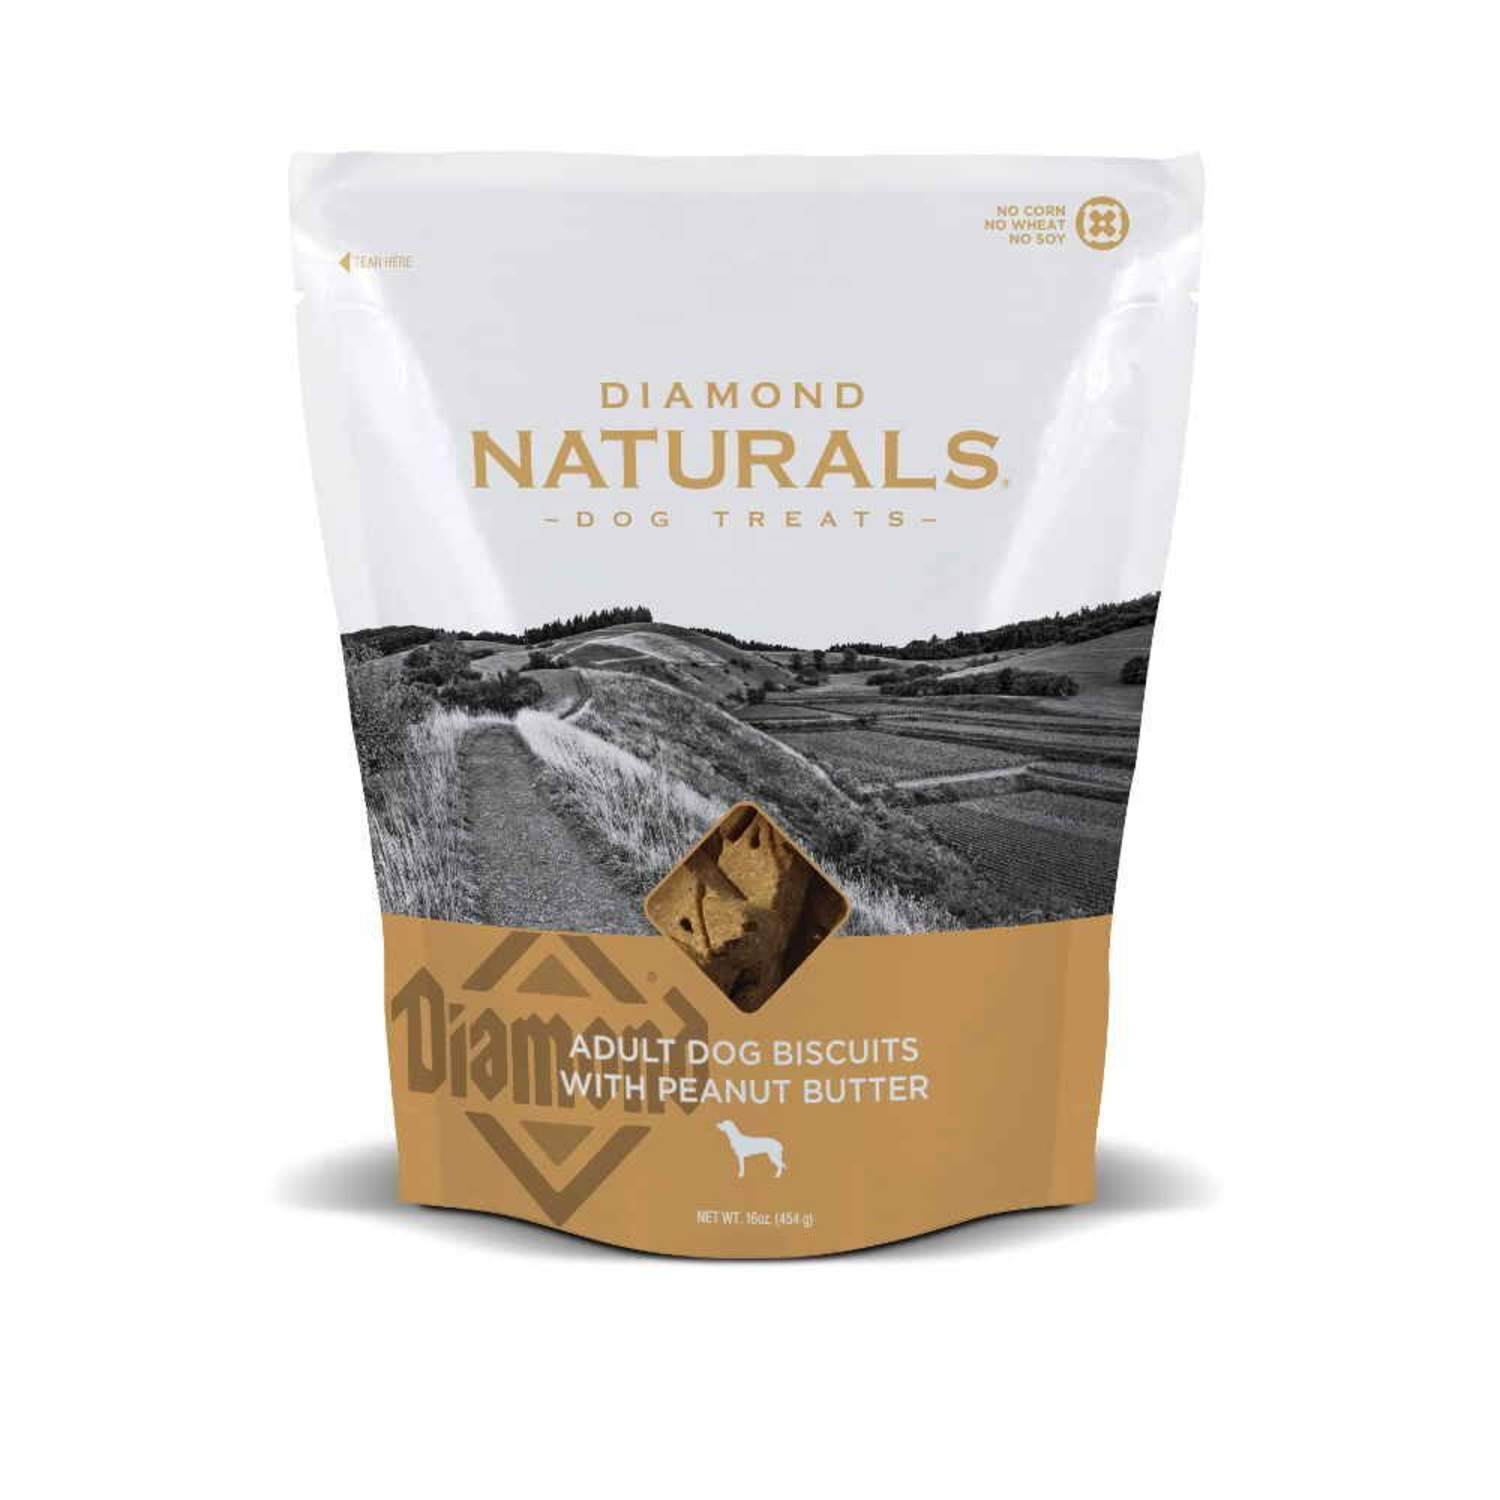 Where Is Diamond Naturals Dog Food Made